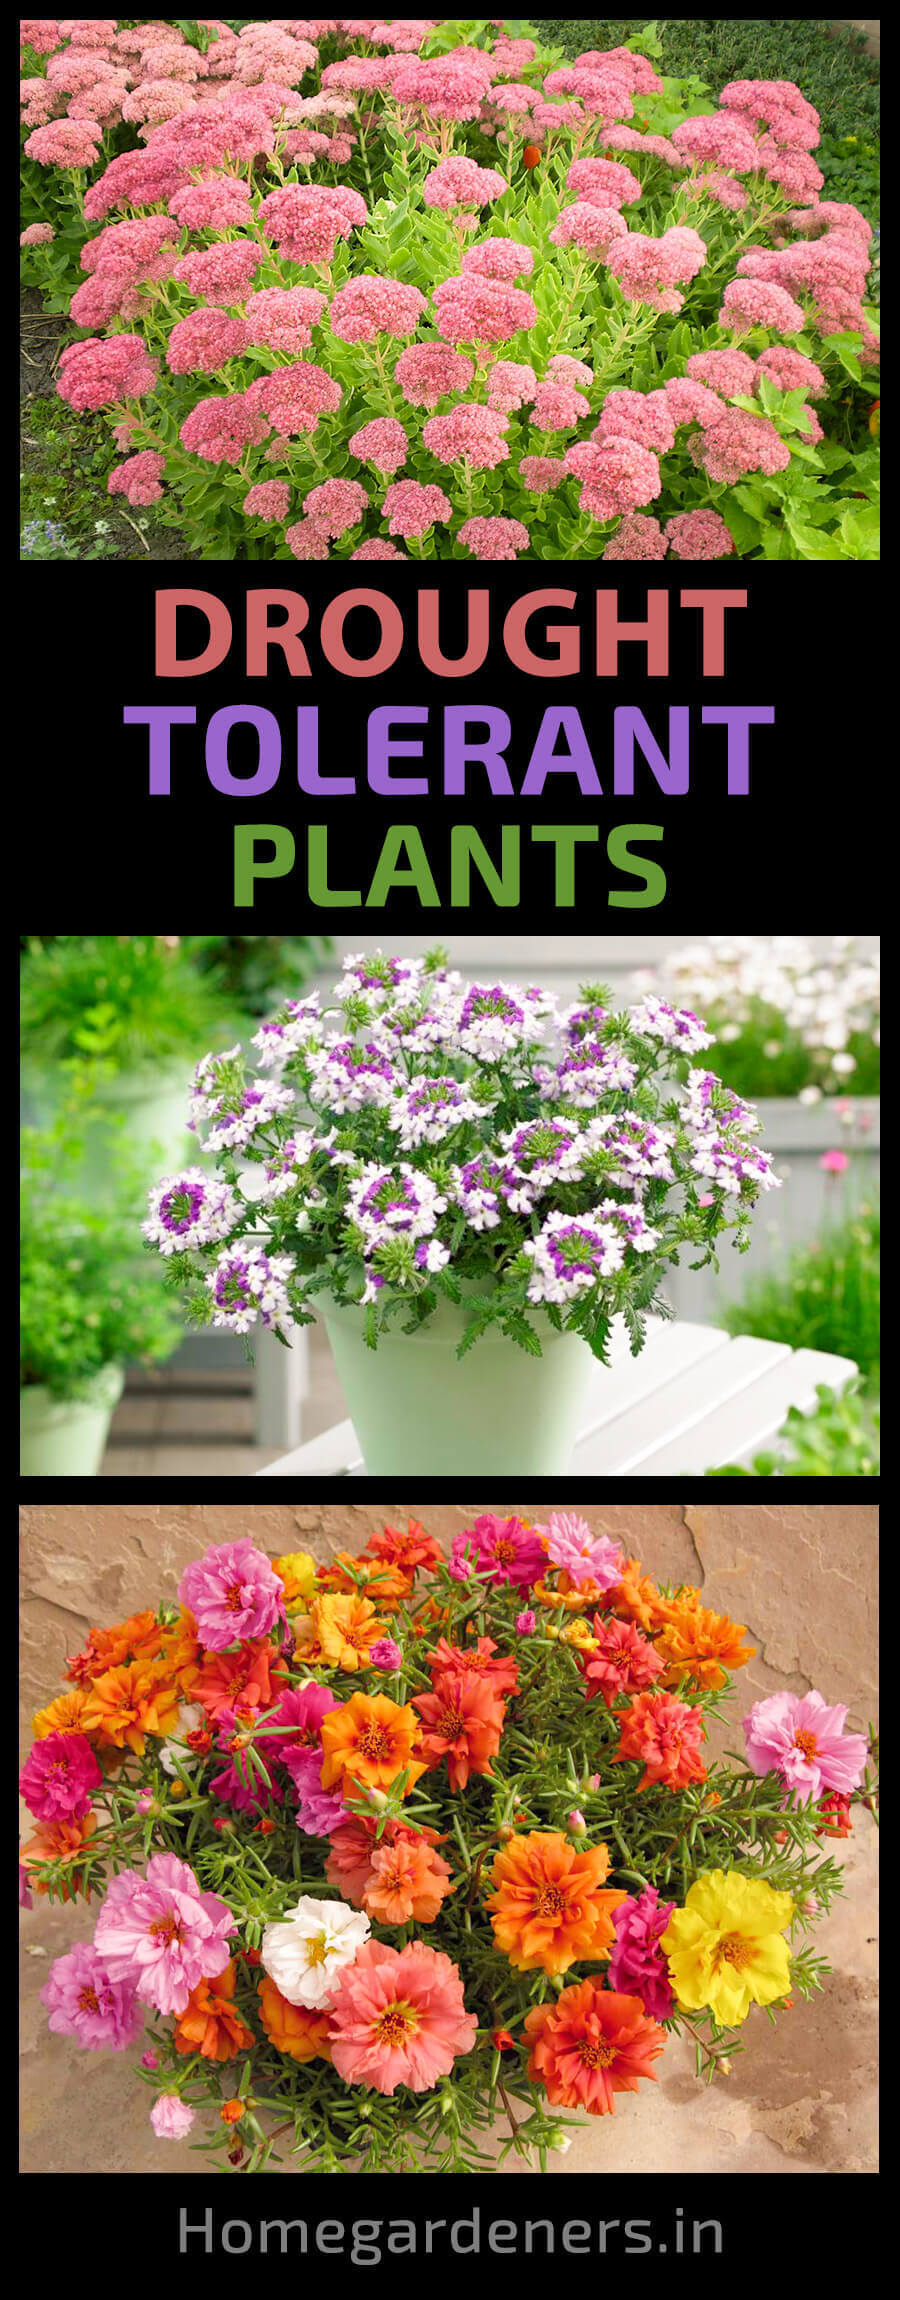 The 10 Best Drought Tolerant Plants that Grow in Lack of Water -   12 plants Home drought tolerant ideas